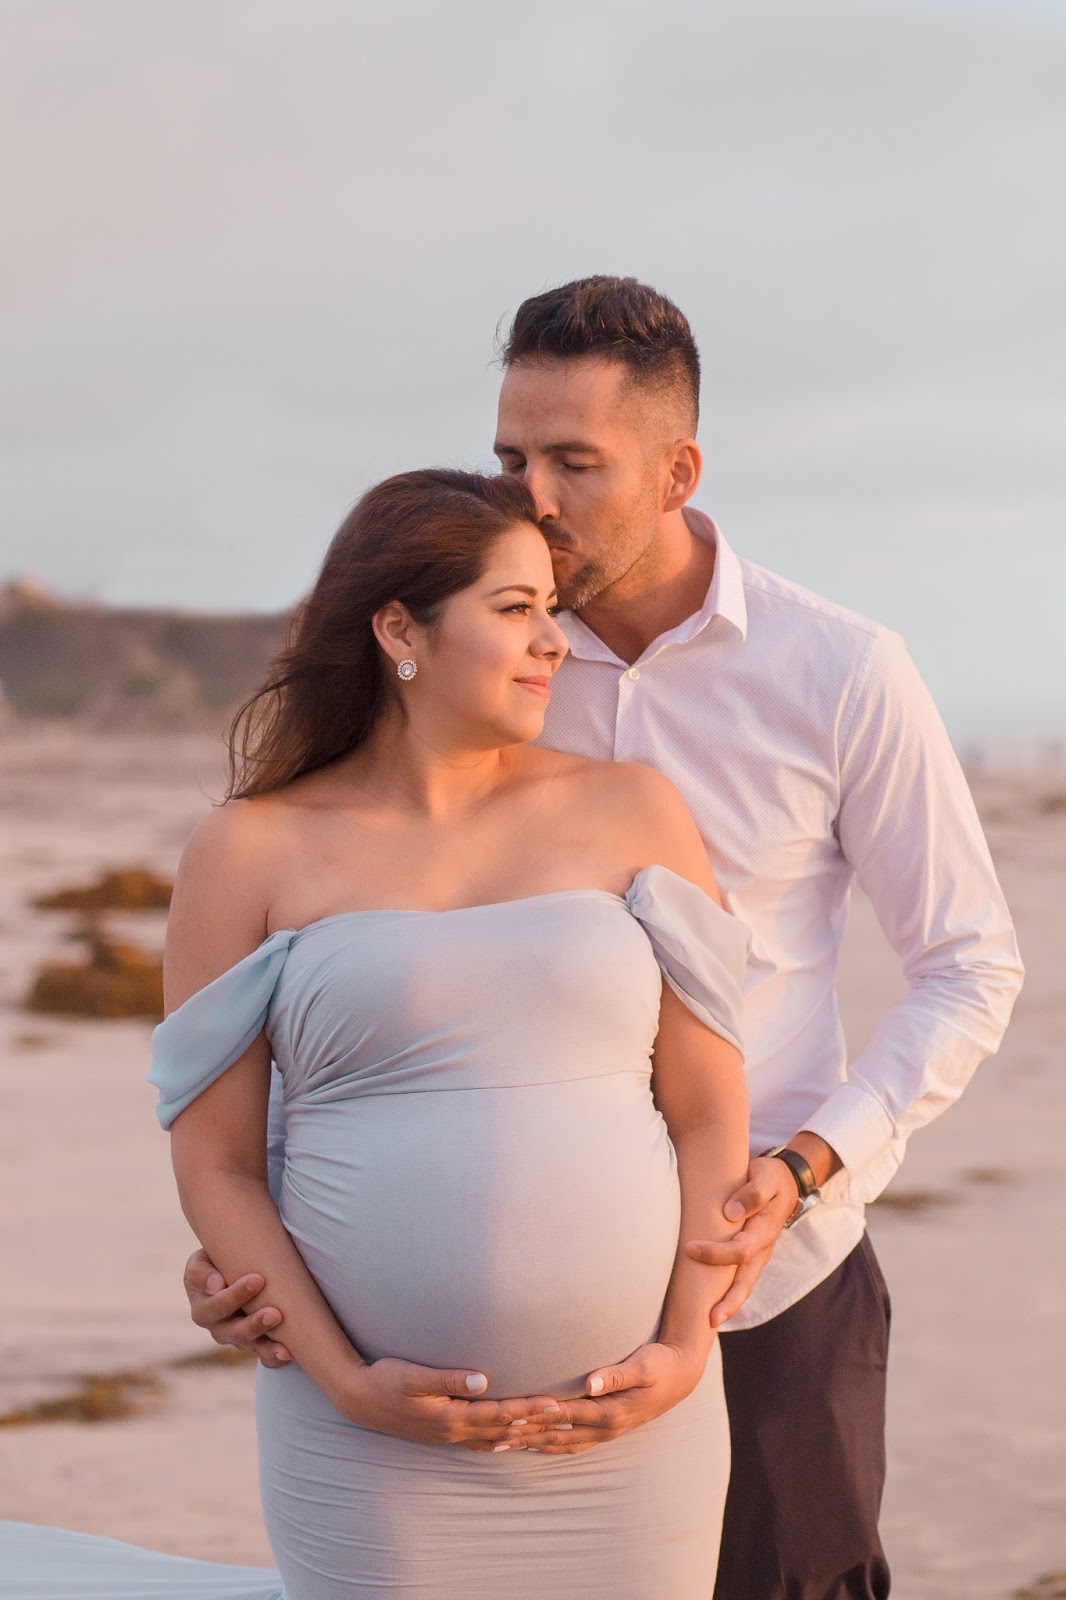 couples maternity shoot, maternity shoot ideas, maternity shoot outfit ideas